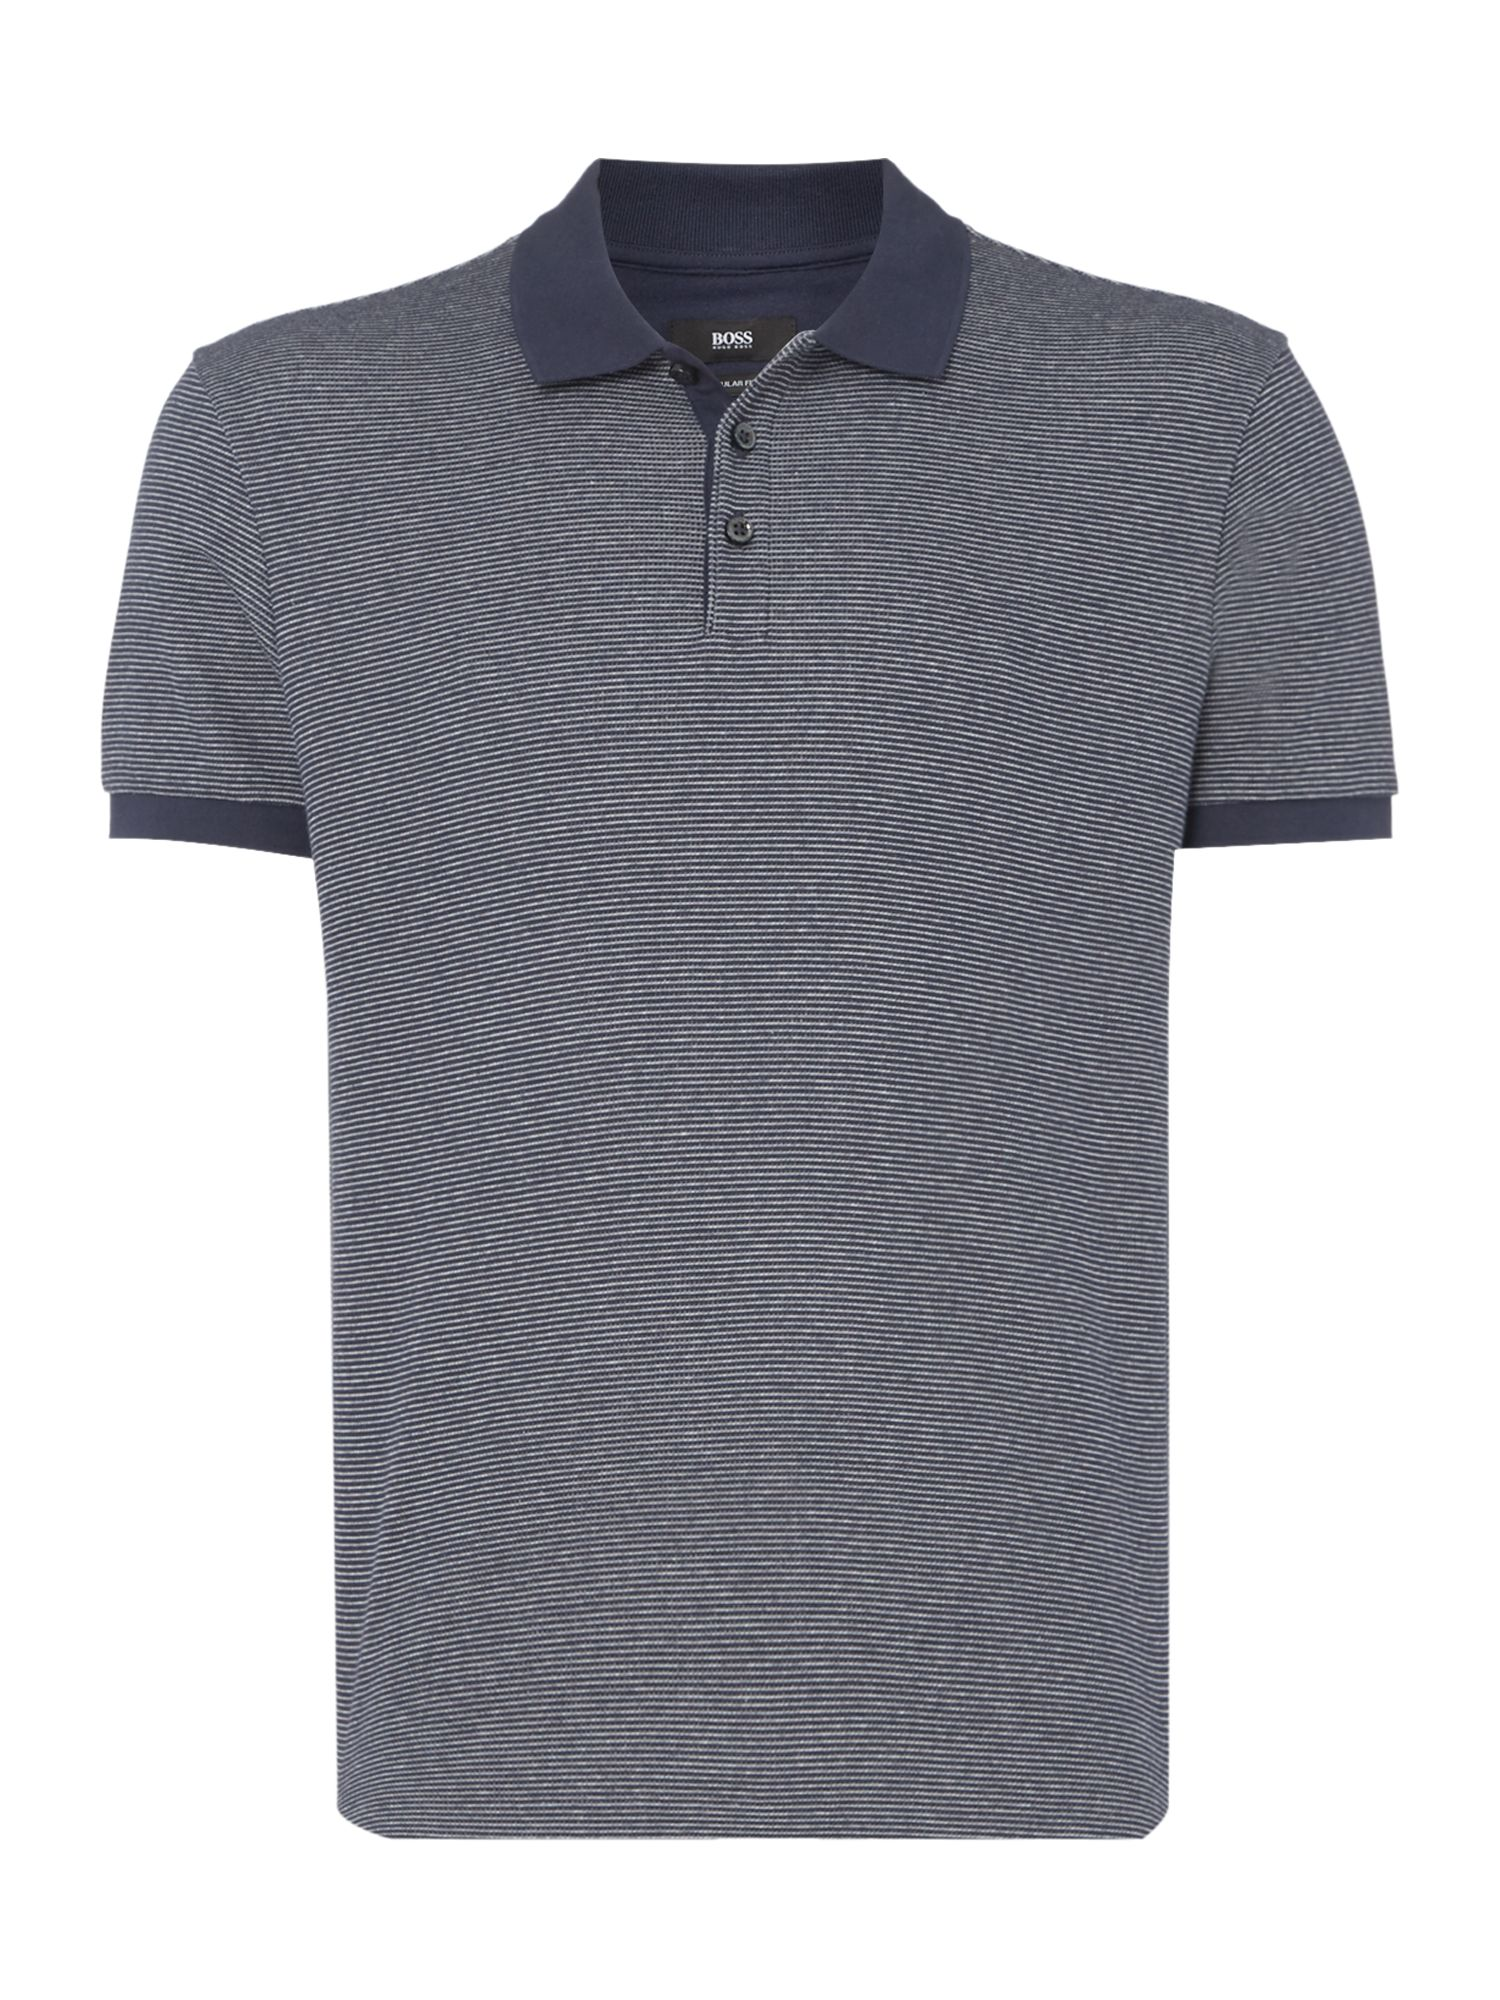 Men's Hugo Boss Striped Cotton Regular Fit Polo Shirt, Blue